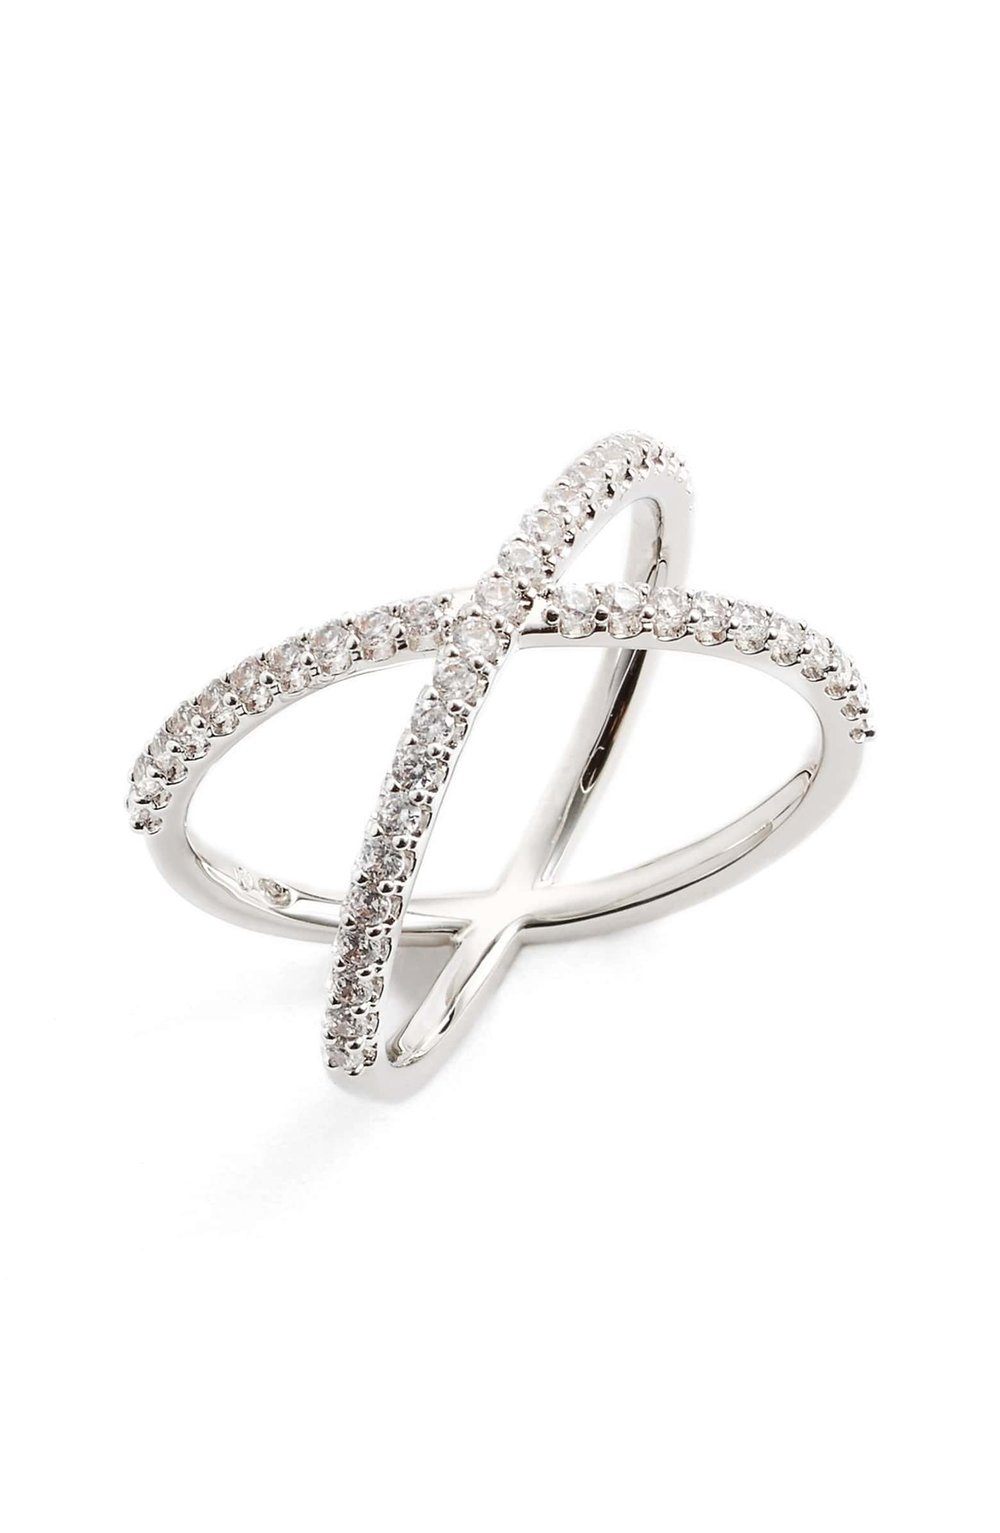 Cubic Zirconia Crossover Ring in Silver $55.00 -